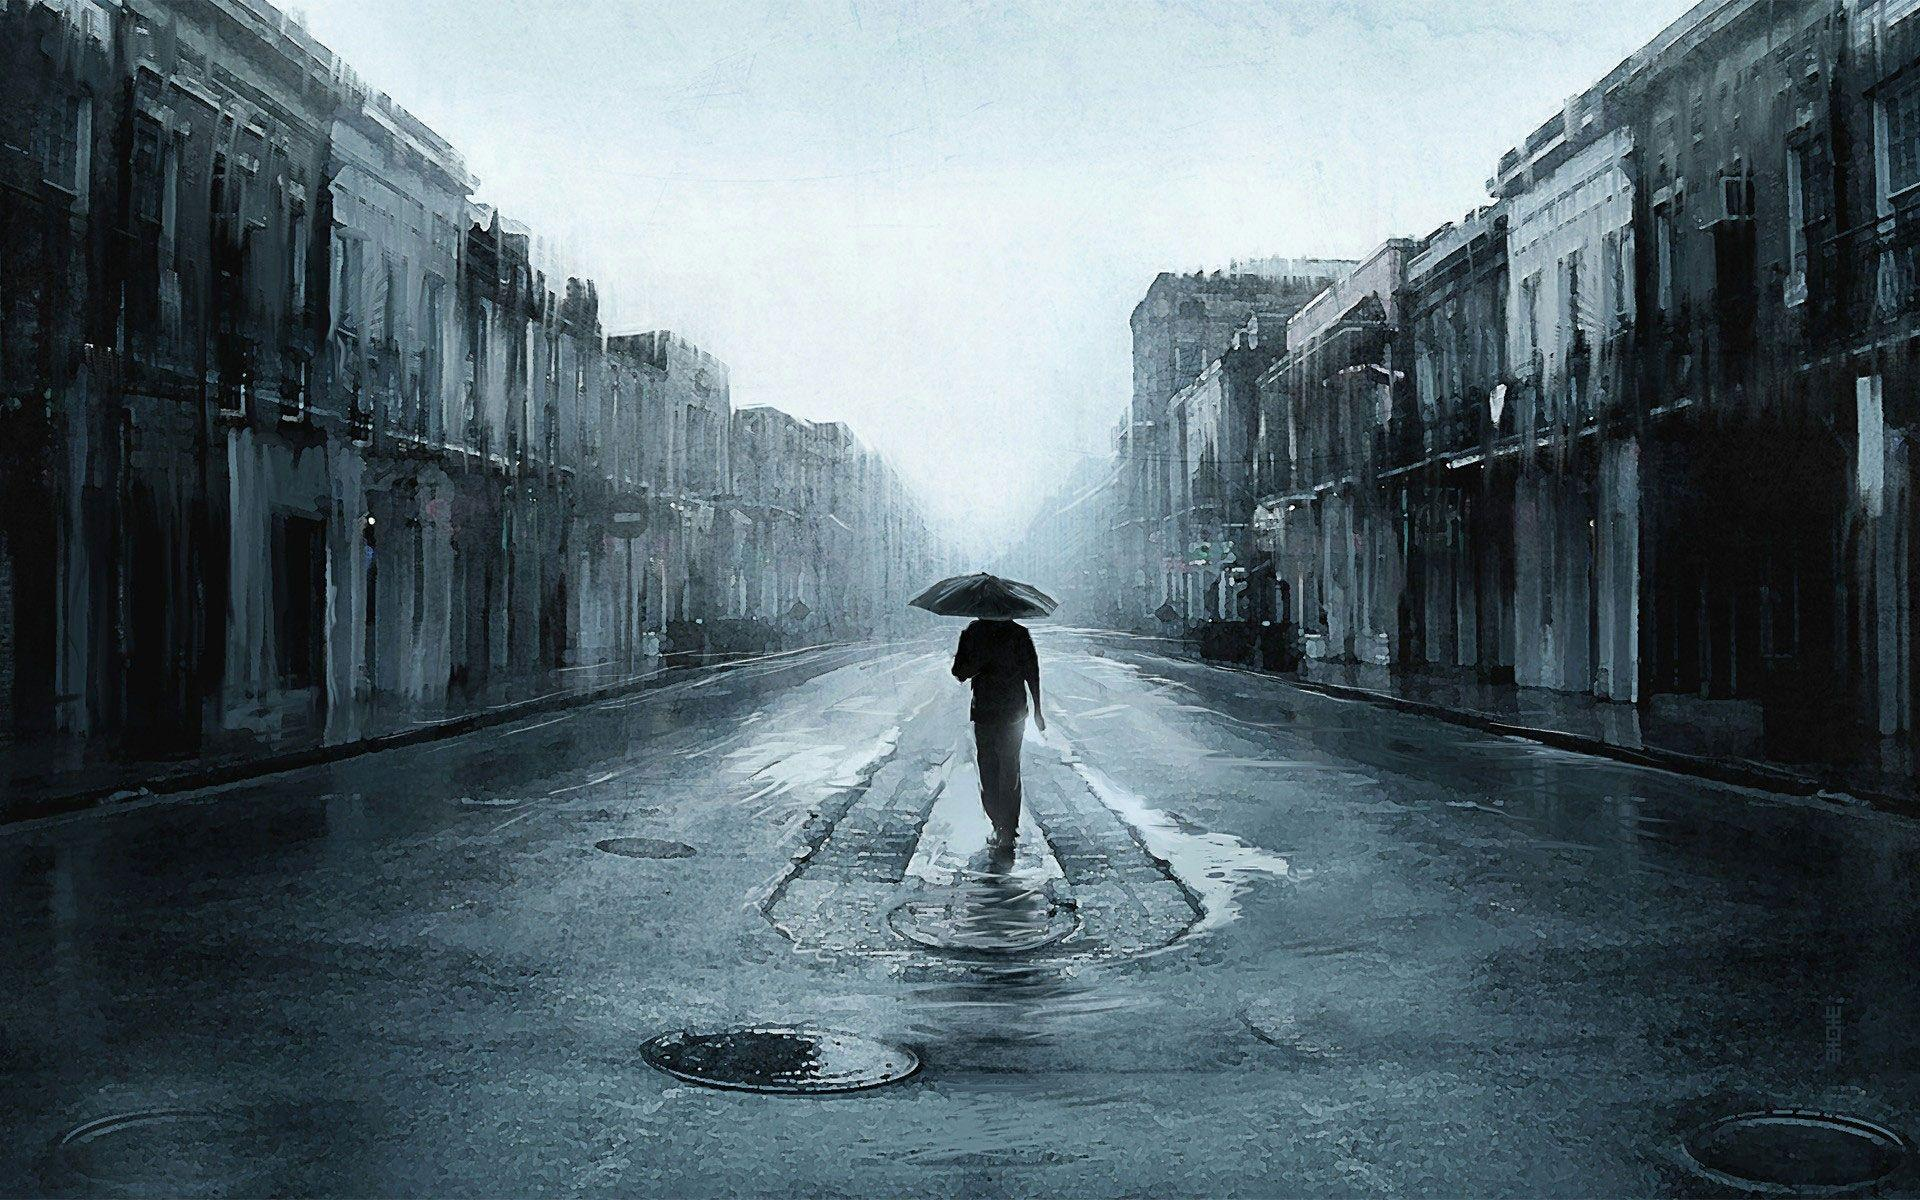 Rain alone wallpaper heart touching sad boy wallpapers hd pictures